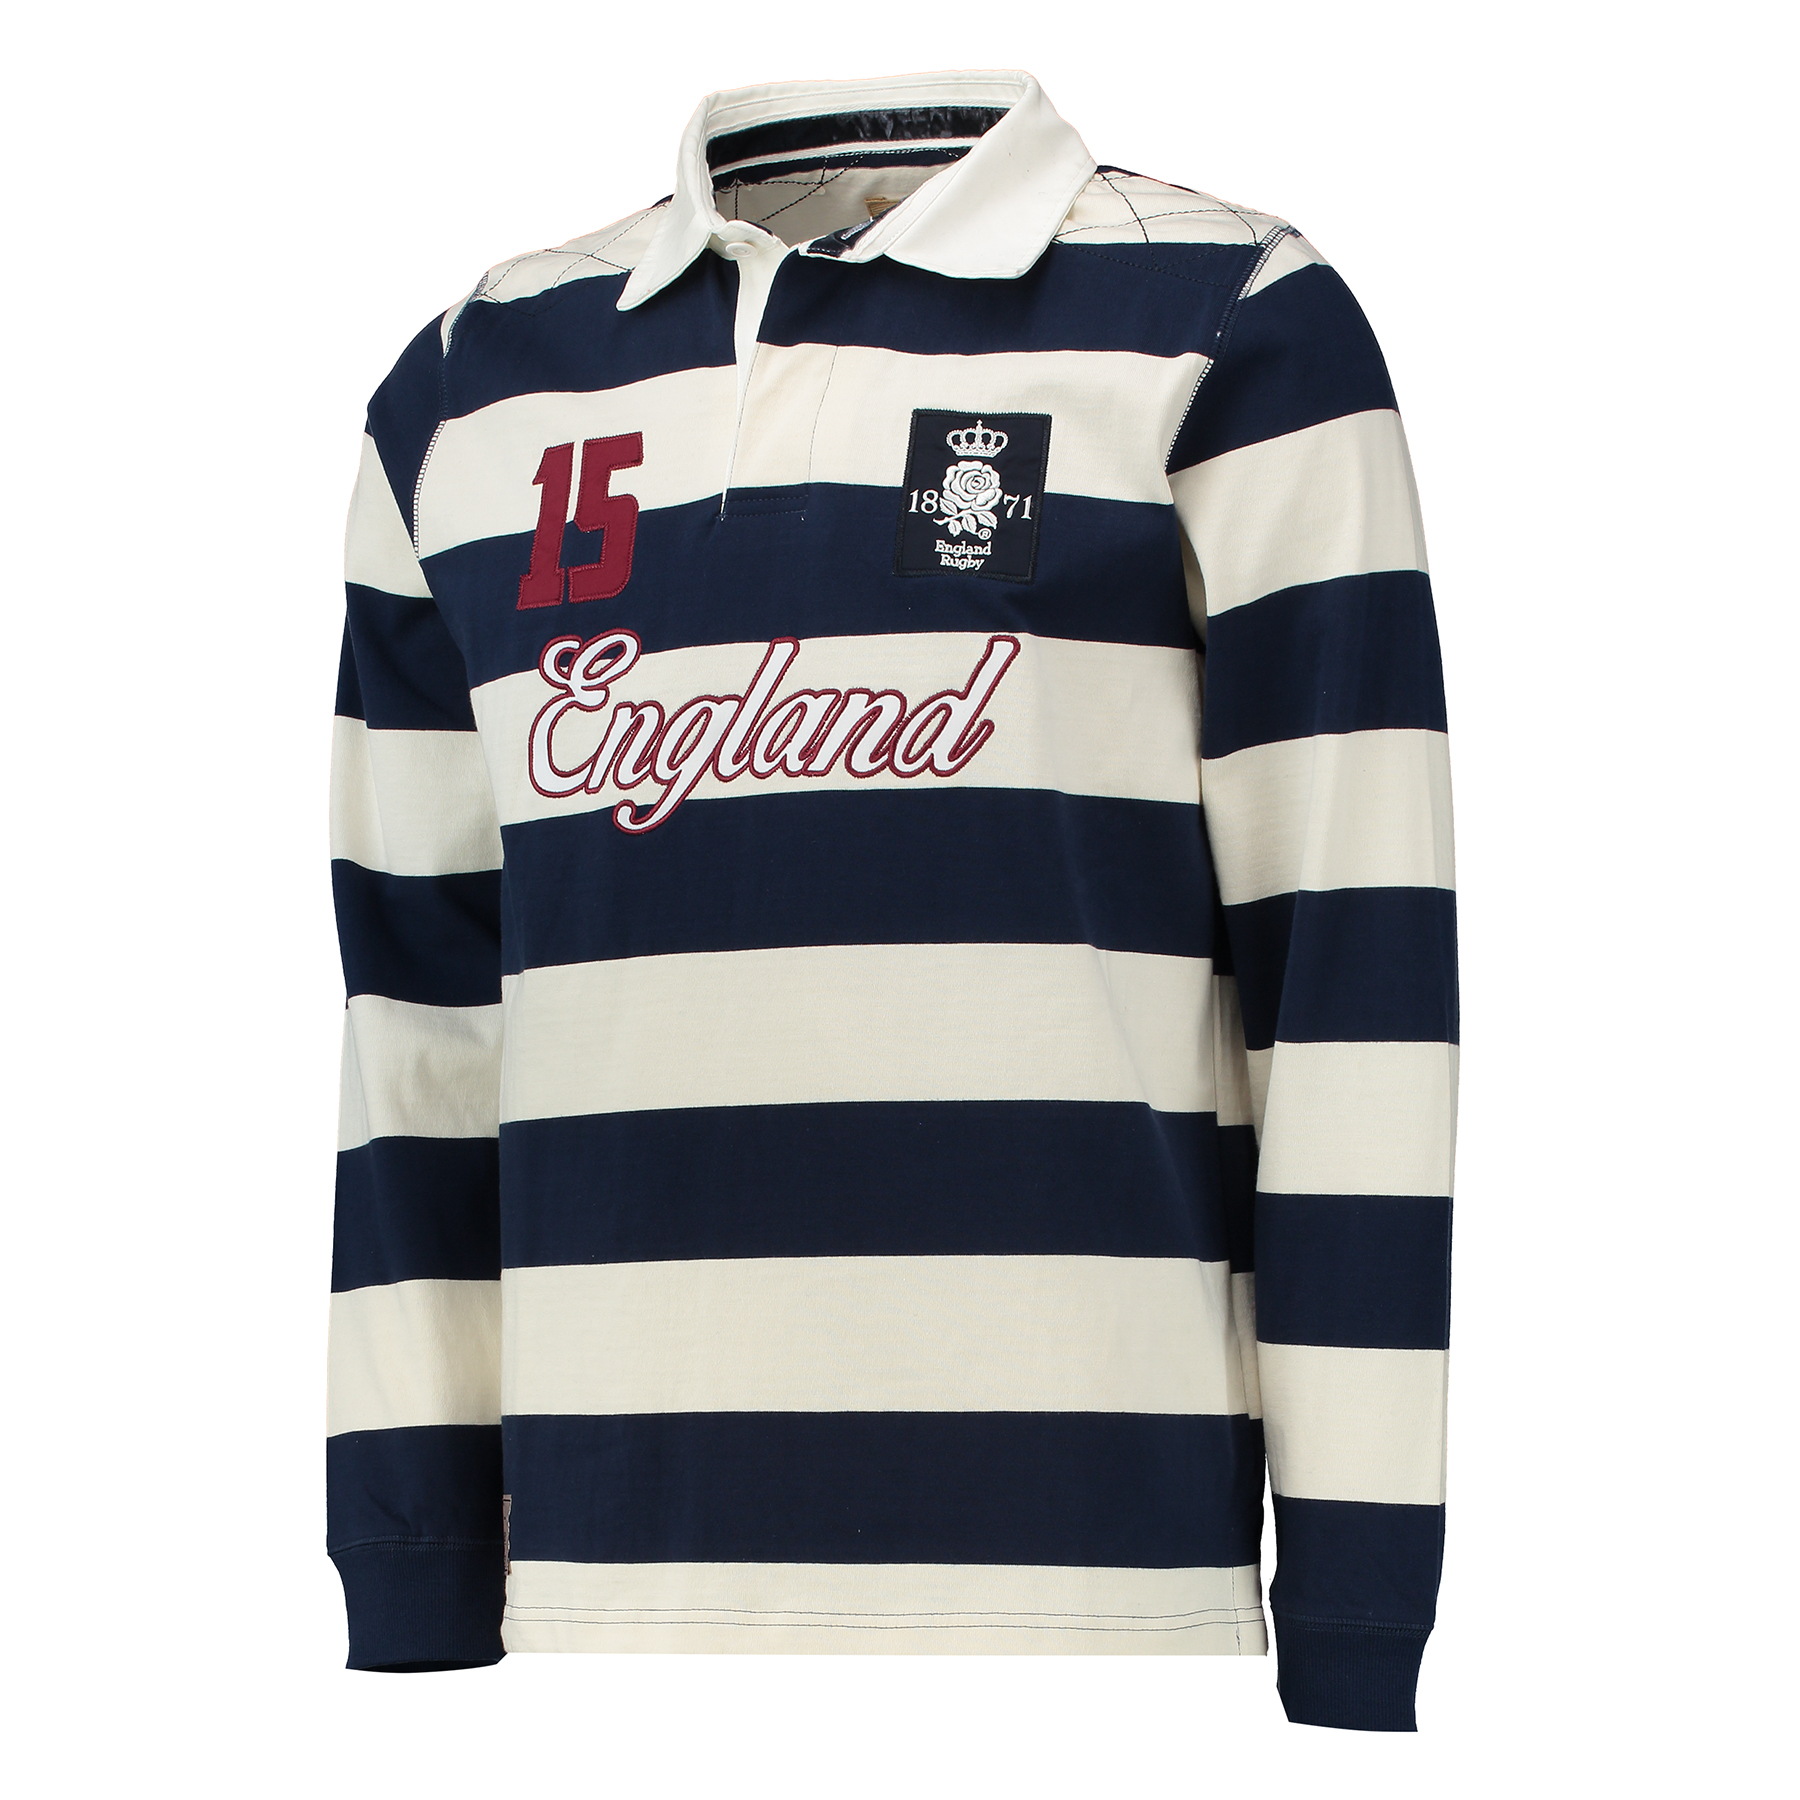 England Authentics 1871 Rugby Shirt - Navy/White